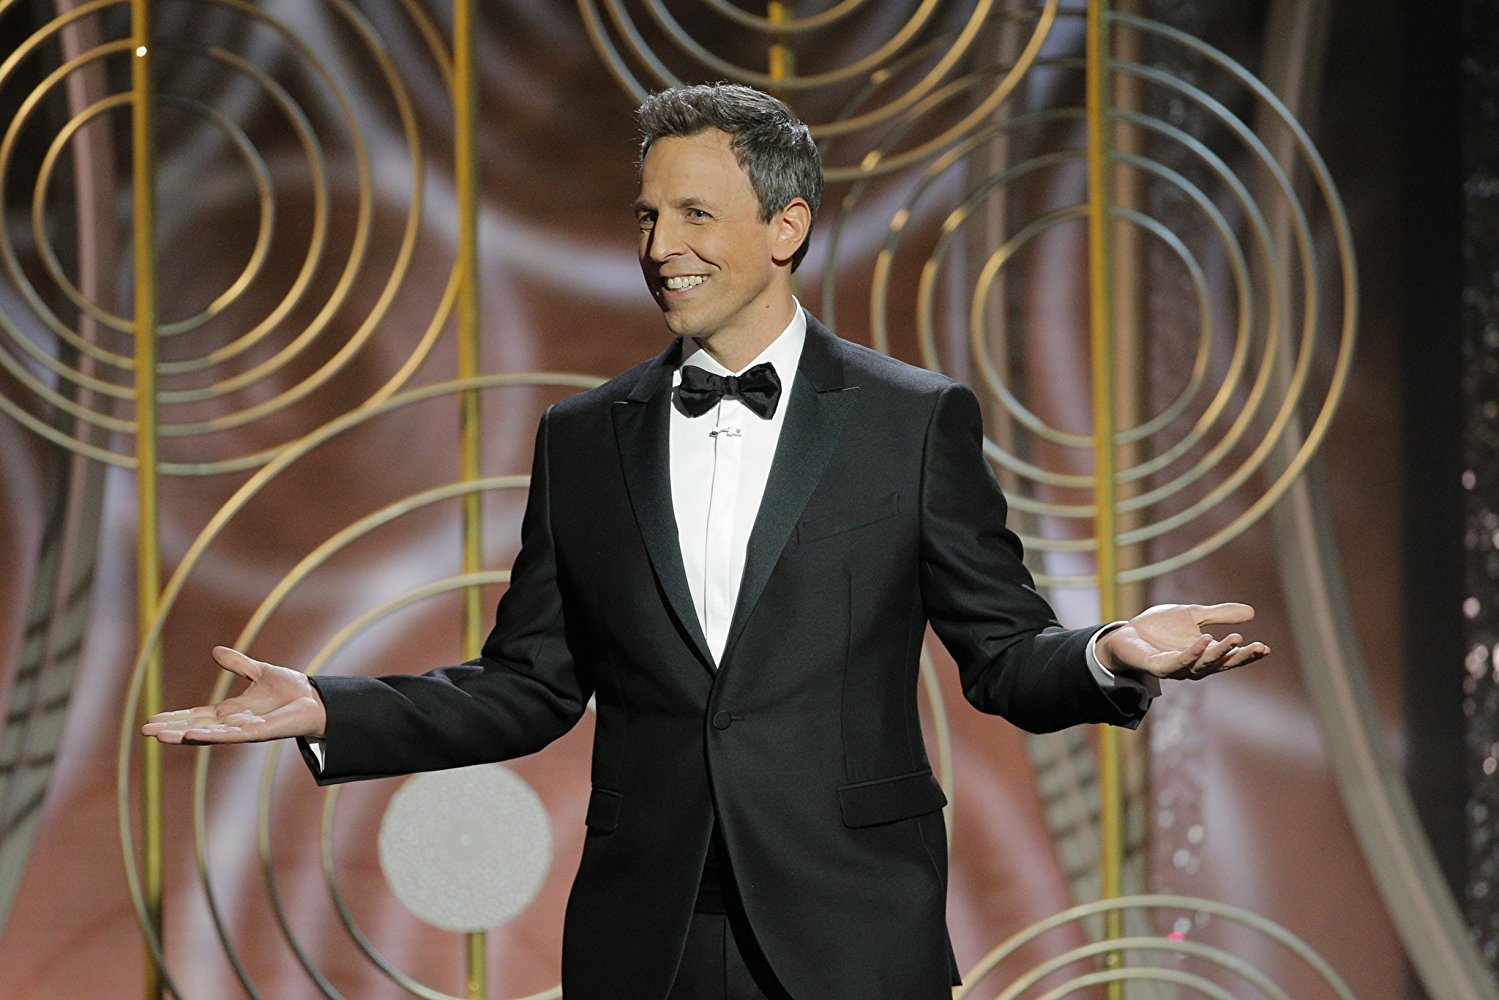 https://cinemaplanet.pt/wp-content/uploads/2018/01/seth-meyers.jpg